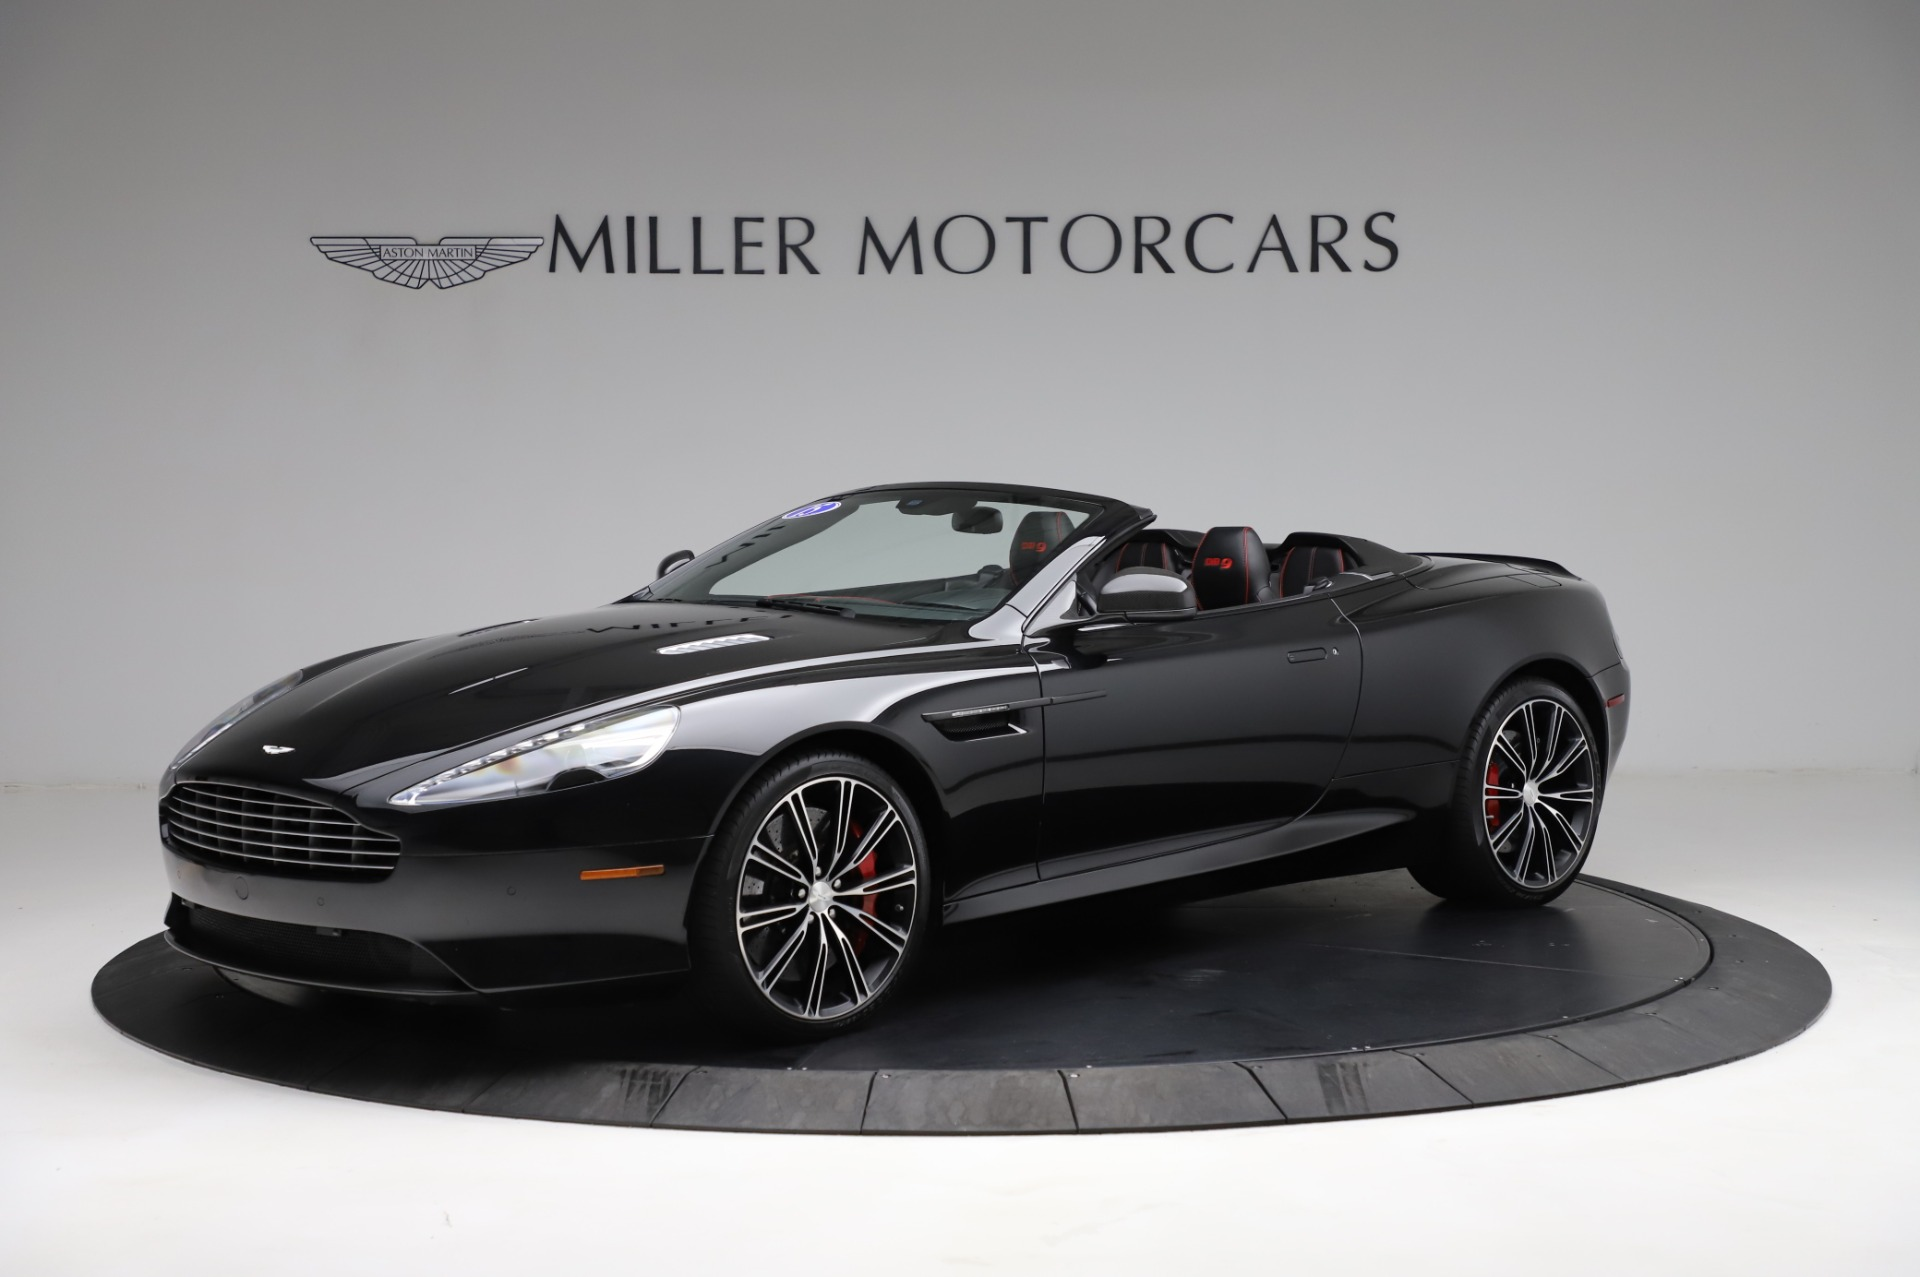 Used 2015 Aston Martin DB9 Convertible for sale Sold at Pagani of Greenwich in Greenwich CT 06830 1